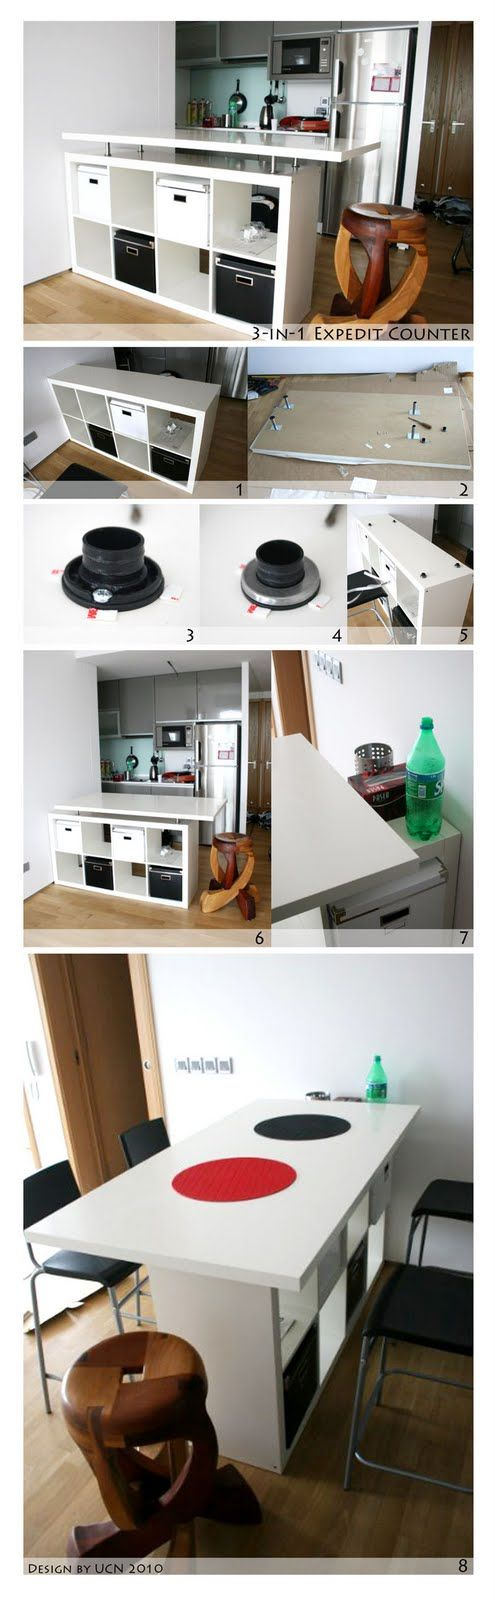 HOME: 3-in-1 Expedit Kitchen Counter